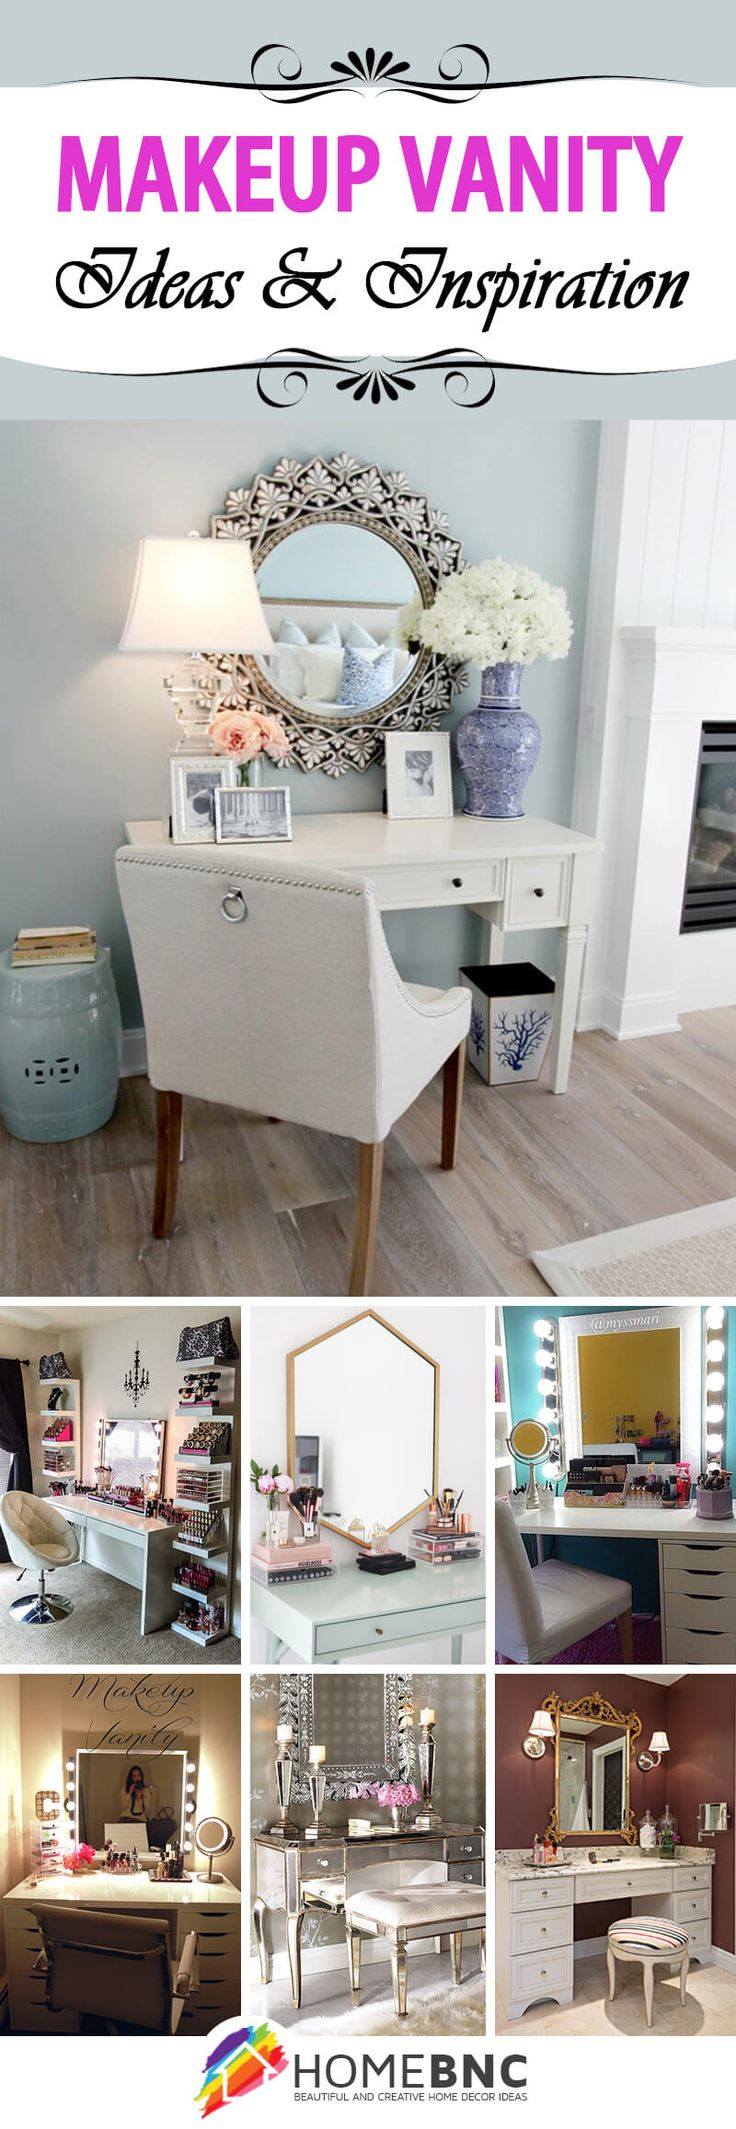 19 Makeup Vanity Ideas that Would Make Any Hollywood Starlet Jealous. 17 Best ideas about Teen Vanity on Pinterest   Room colors